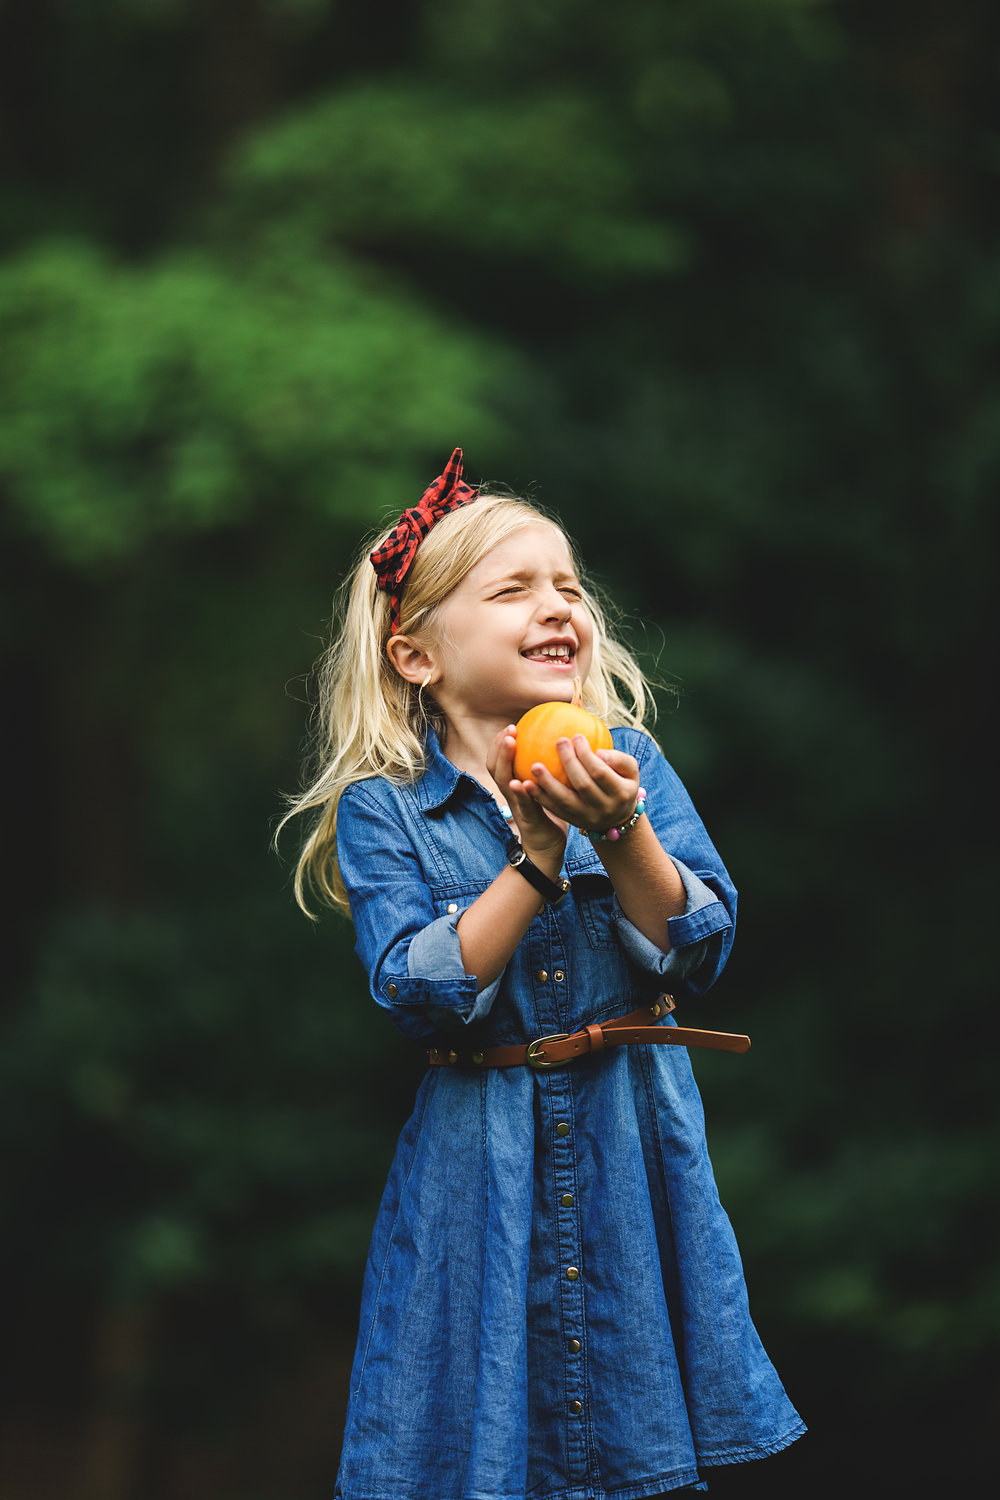 Hello-olivia-photography-Long-island-photography-children-session-family-lifestyle-pumpkin.jpg